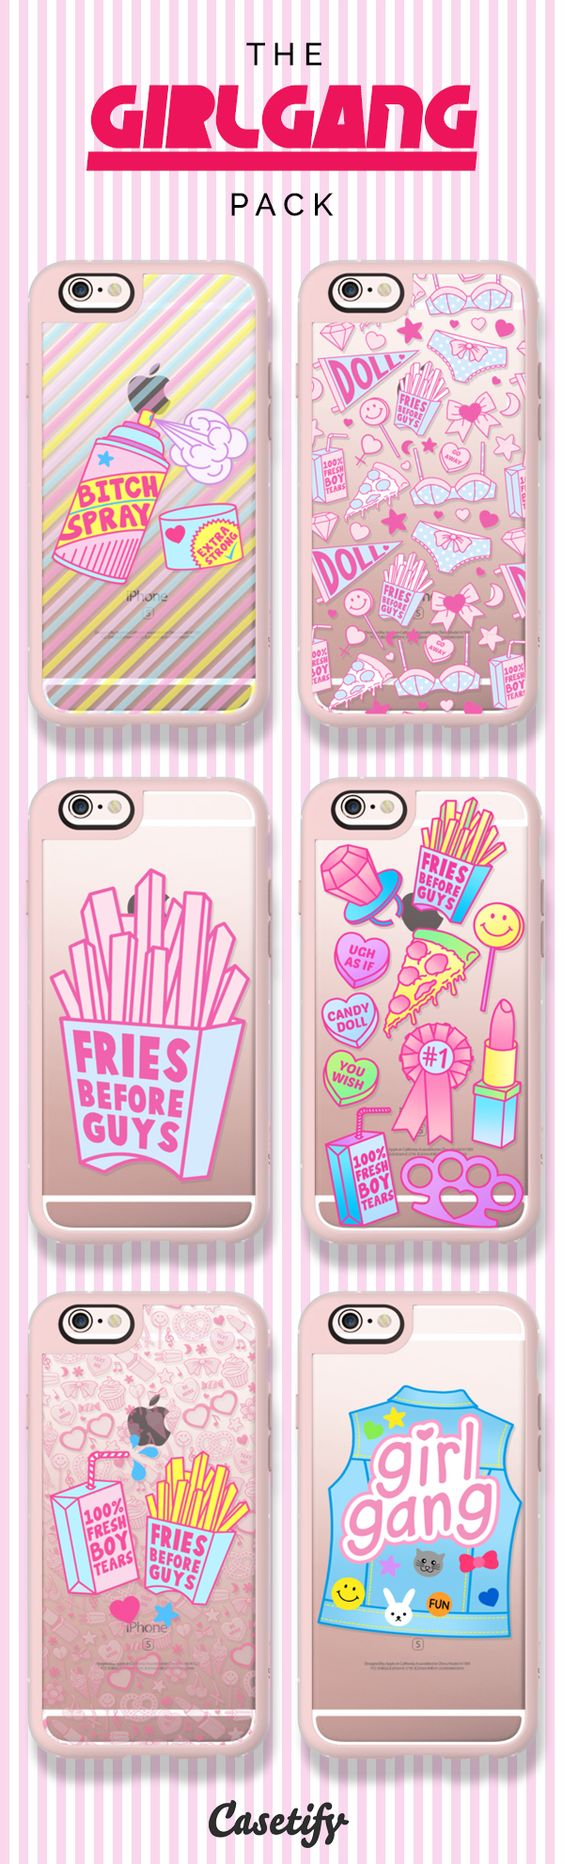 Girls rule! Click to shop our #GirlGang collection here:  | @Casetify